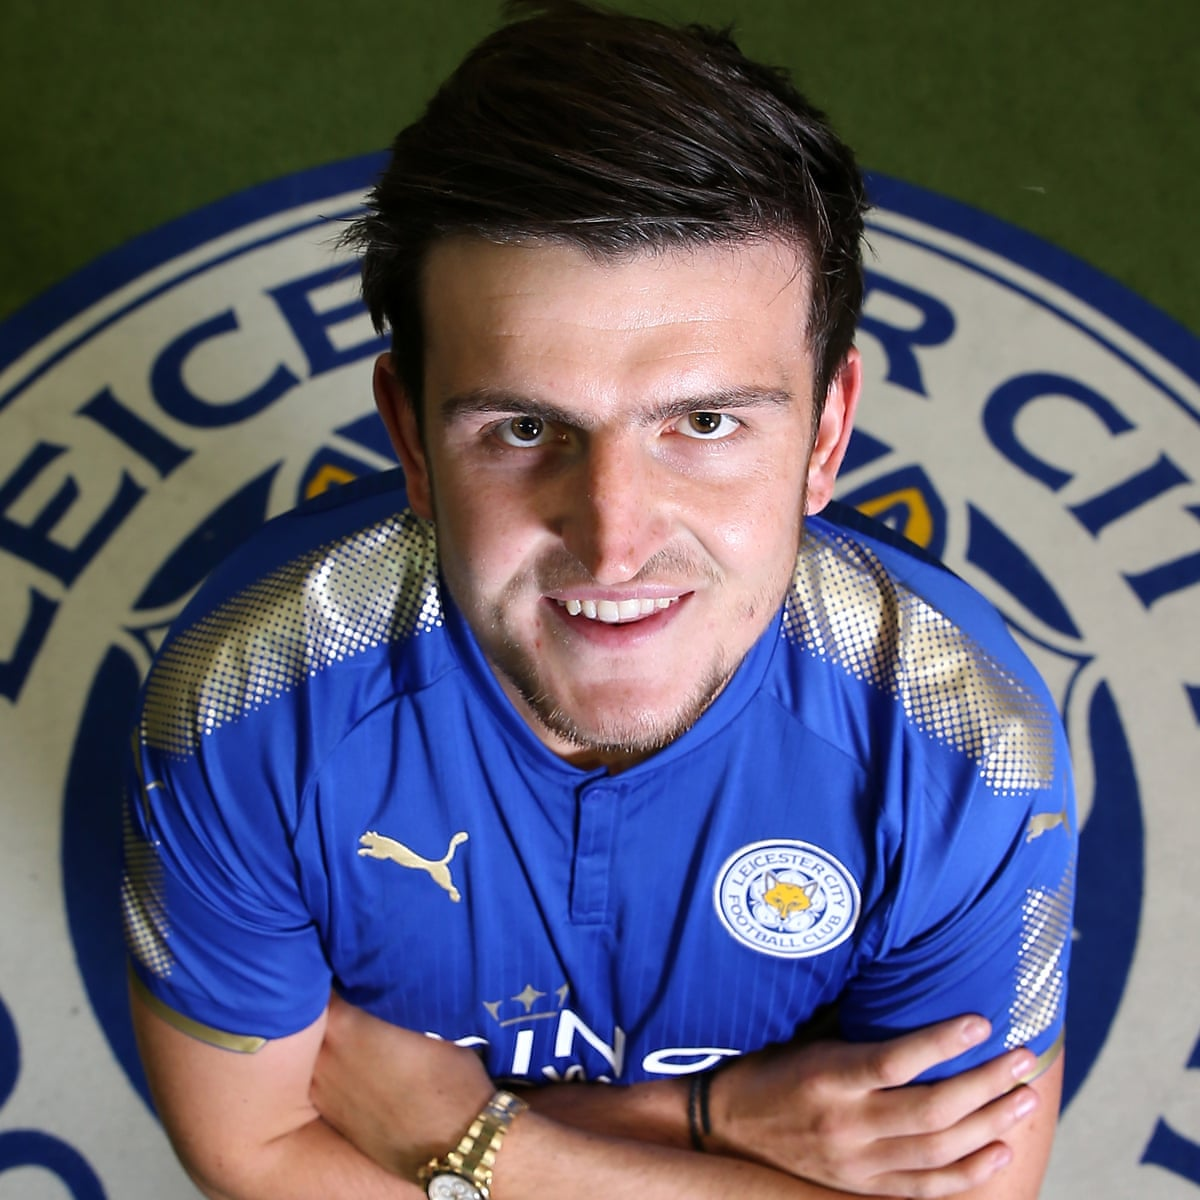 harry maguire completes leicester city transfer from hull leicester city the guardian harry maguire completes leicester city